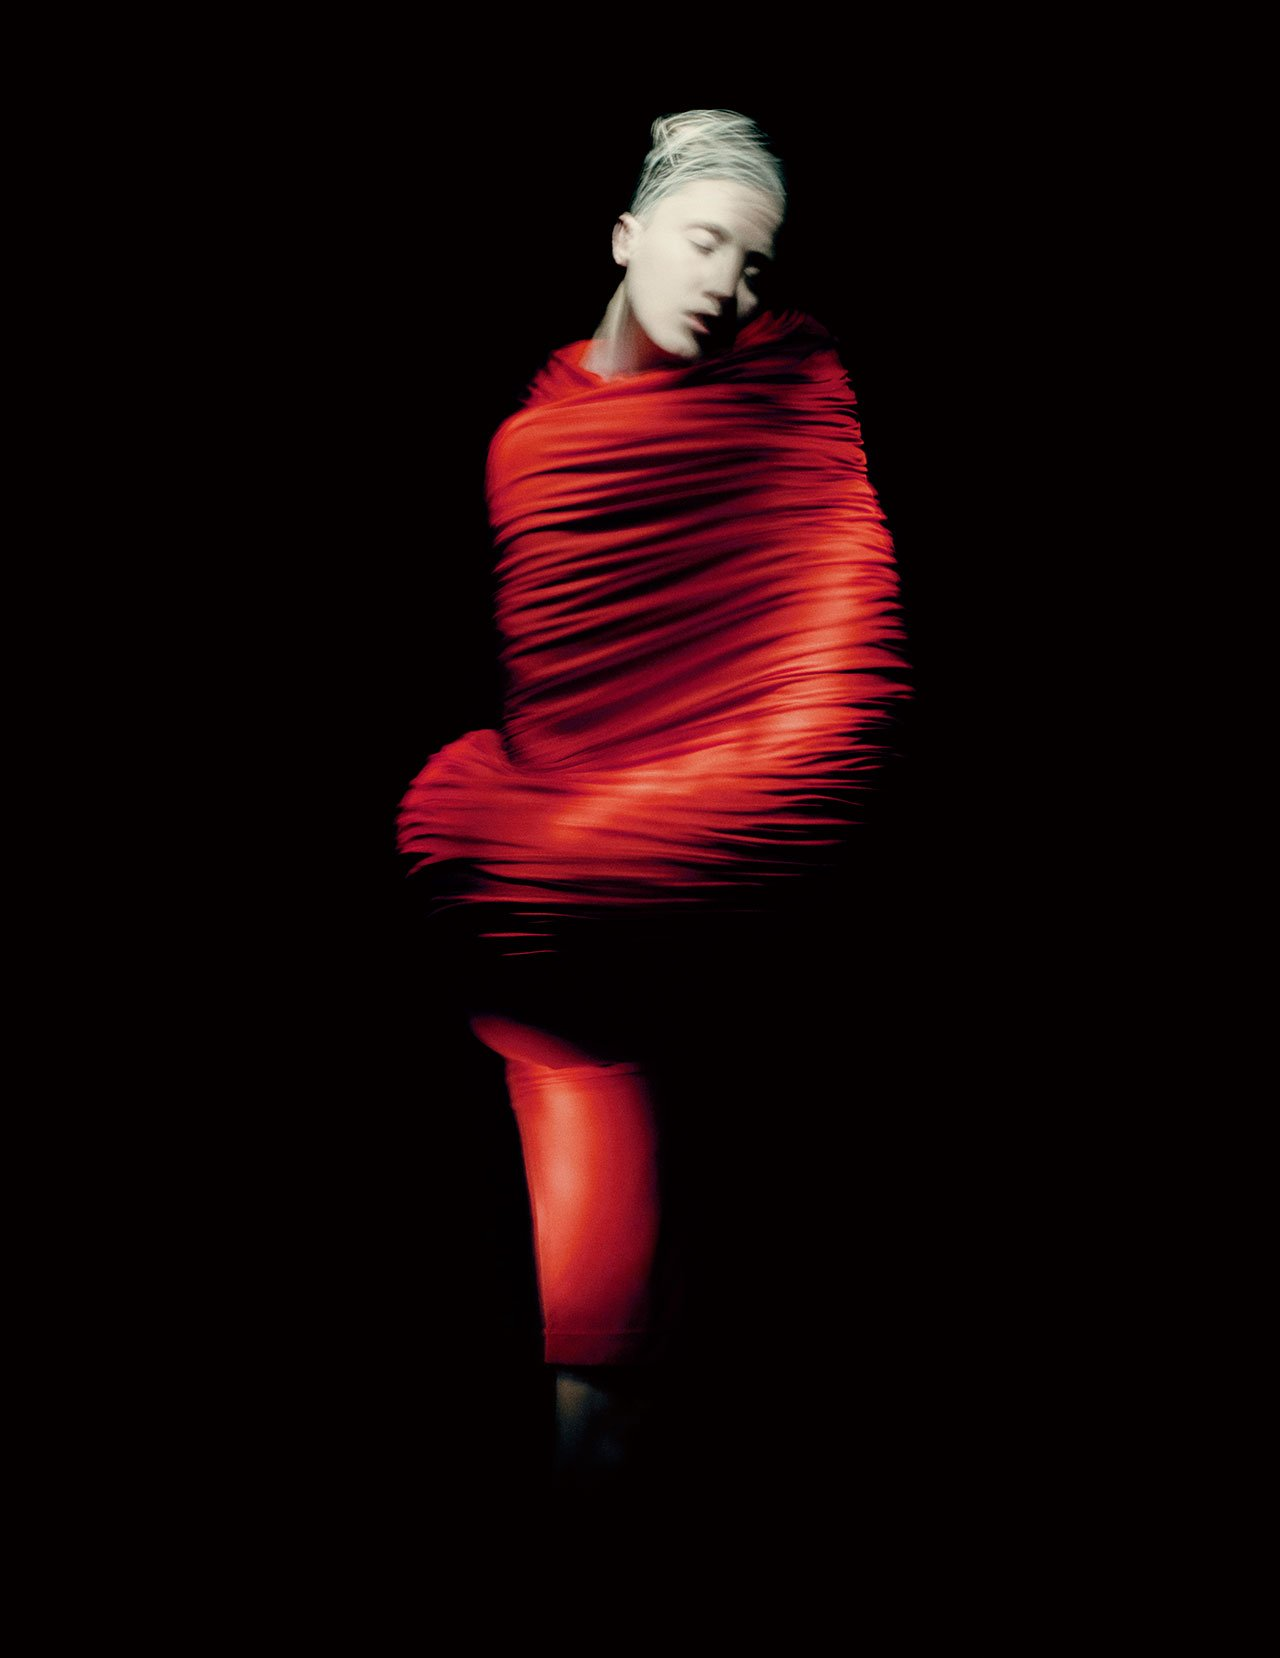 Rei Kawakubo for Comme des Garçons. Body Meets Dress–Dress Meets Body, spring/summer 1997; Courtesy of Comme des Garçons. Photograph by © Paolo Roversi; Courtesy of The Metropolitan Museum of Art.